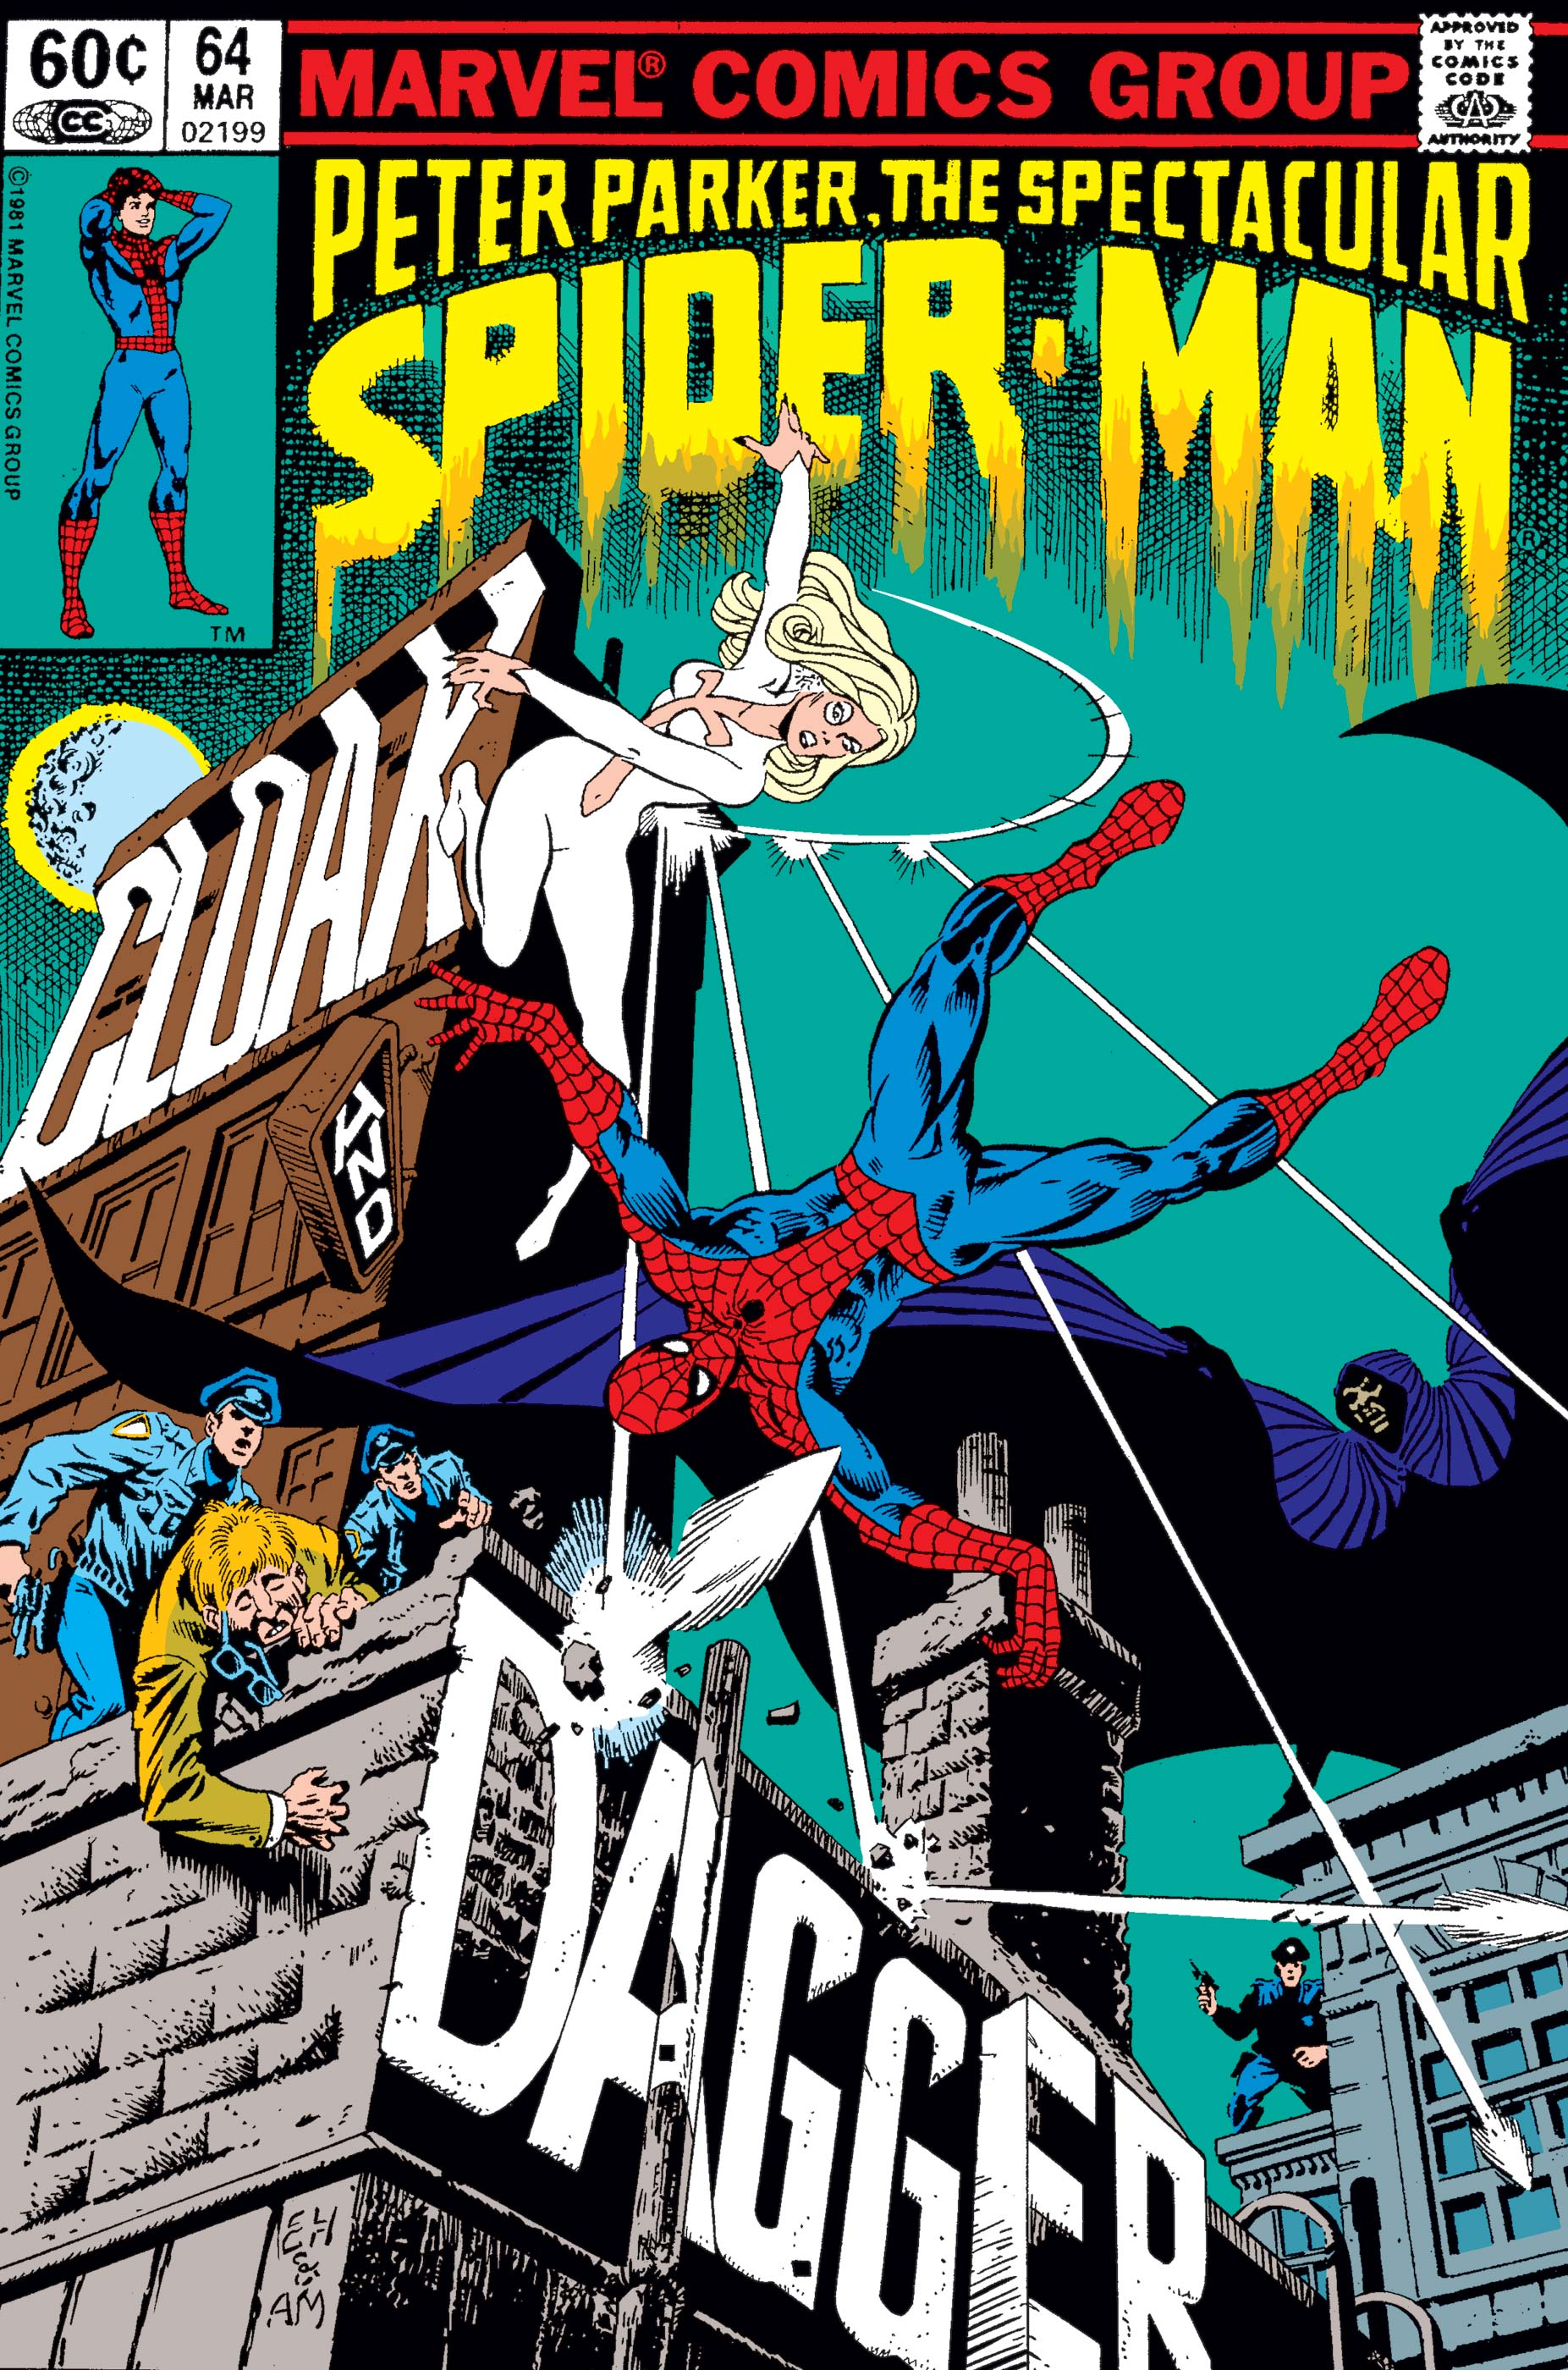 Peter Parker, the Spectacular Spider-Man (1976) #64